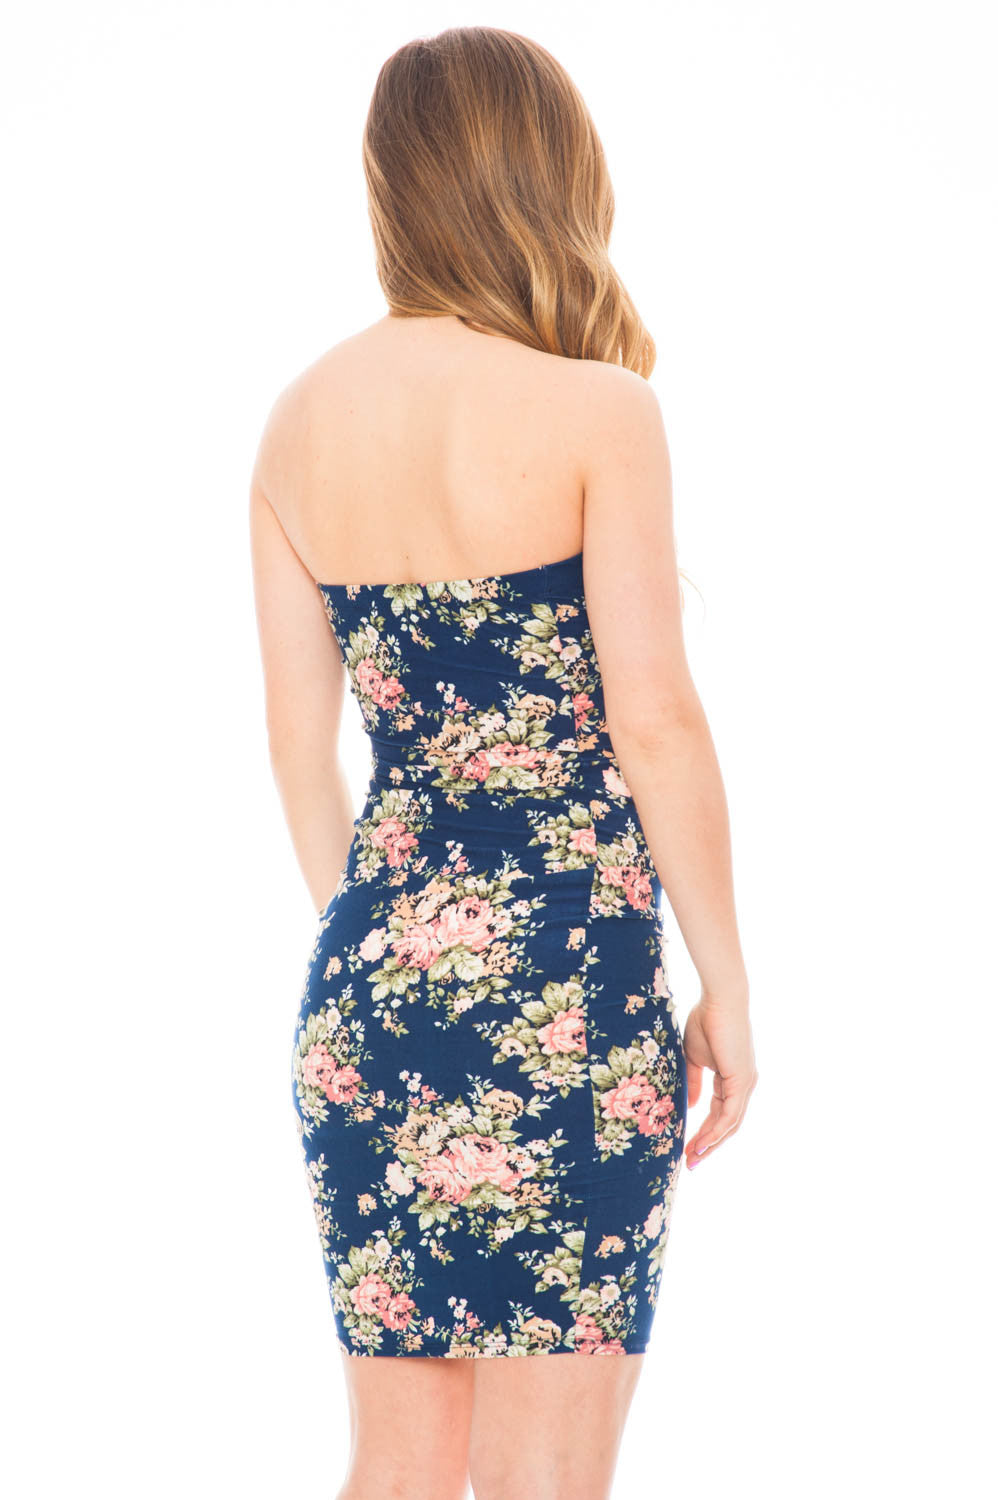 Dress - Floral Strapless Bodycon Dress